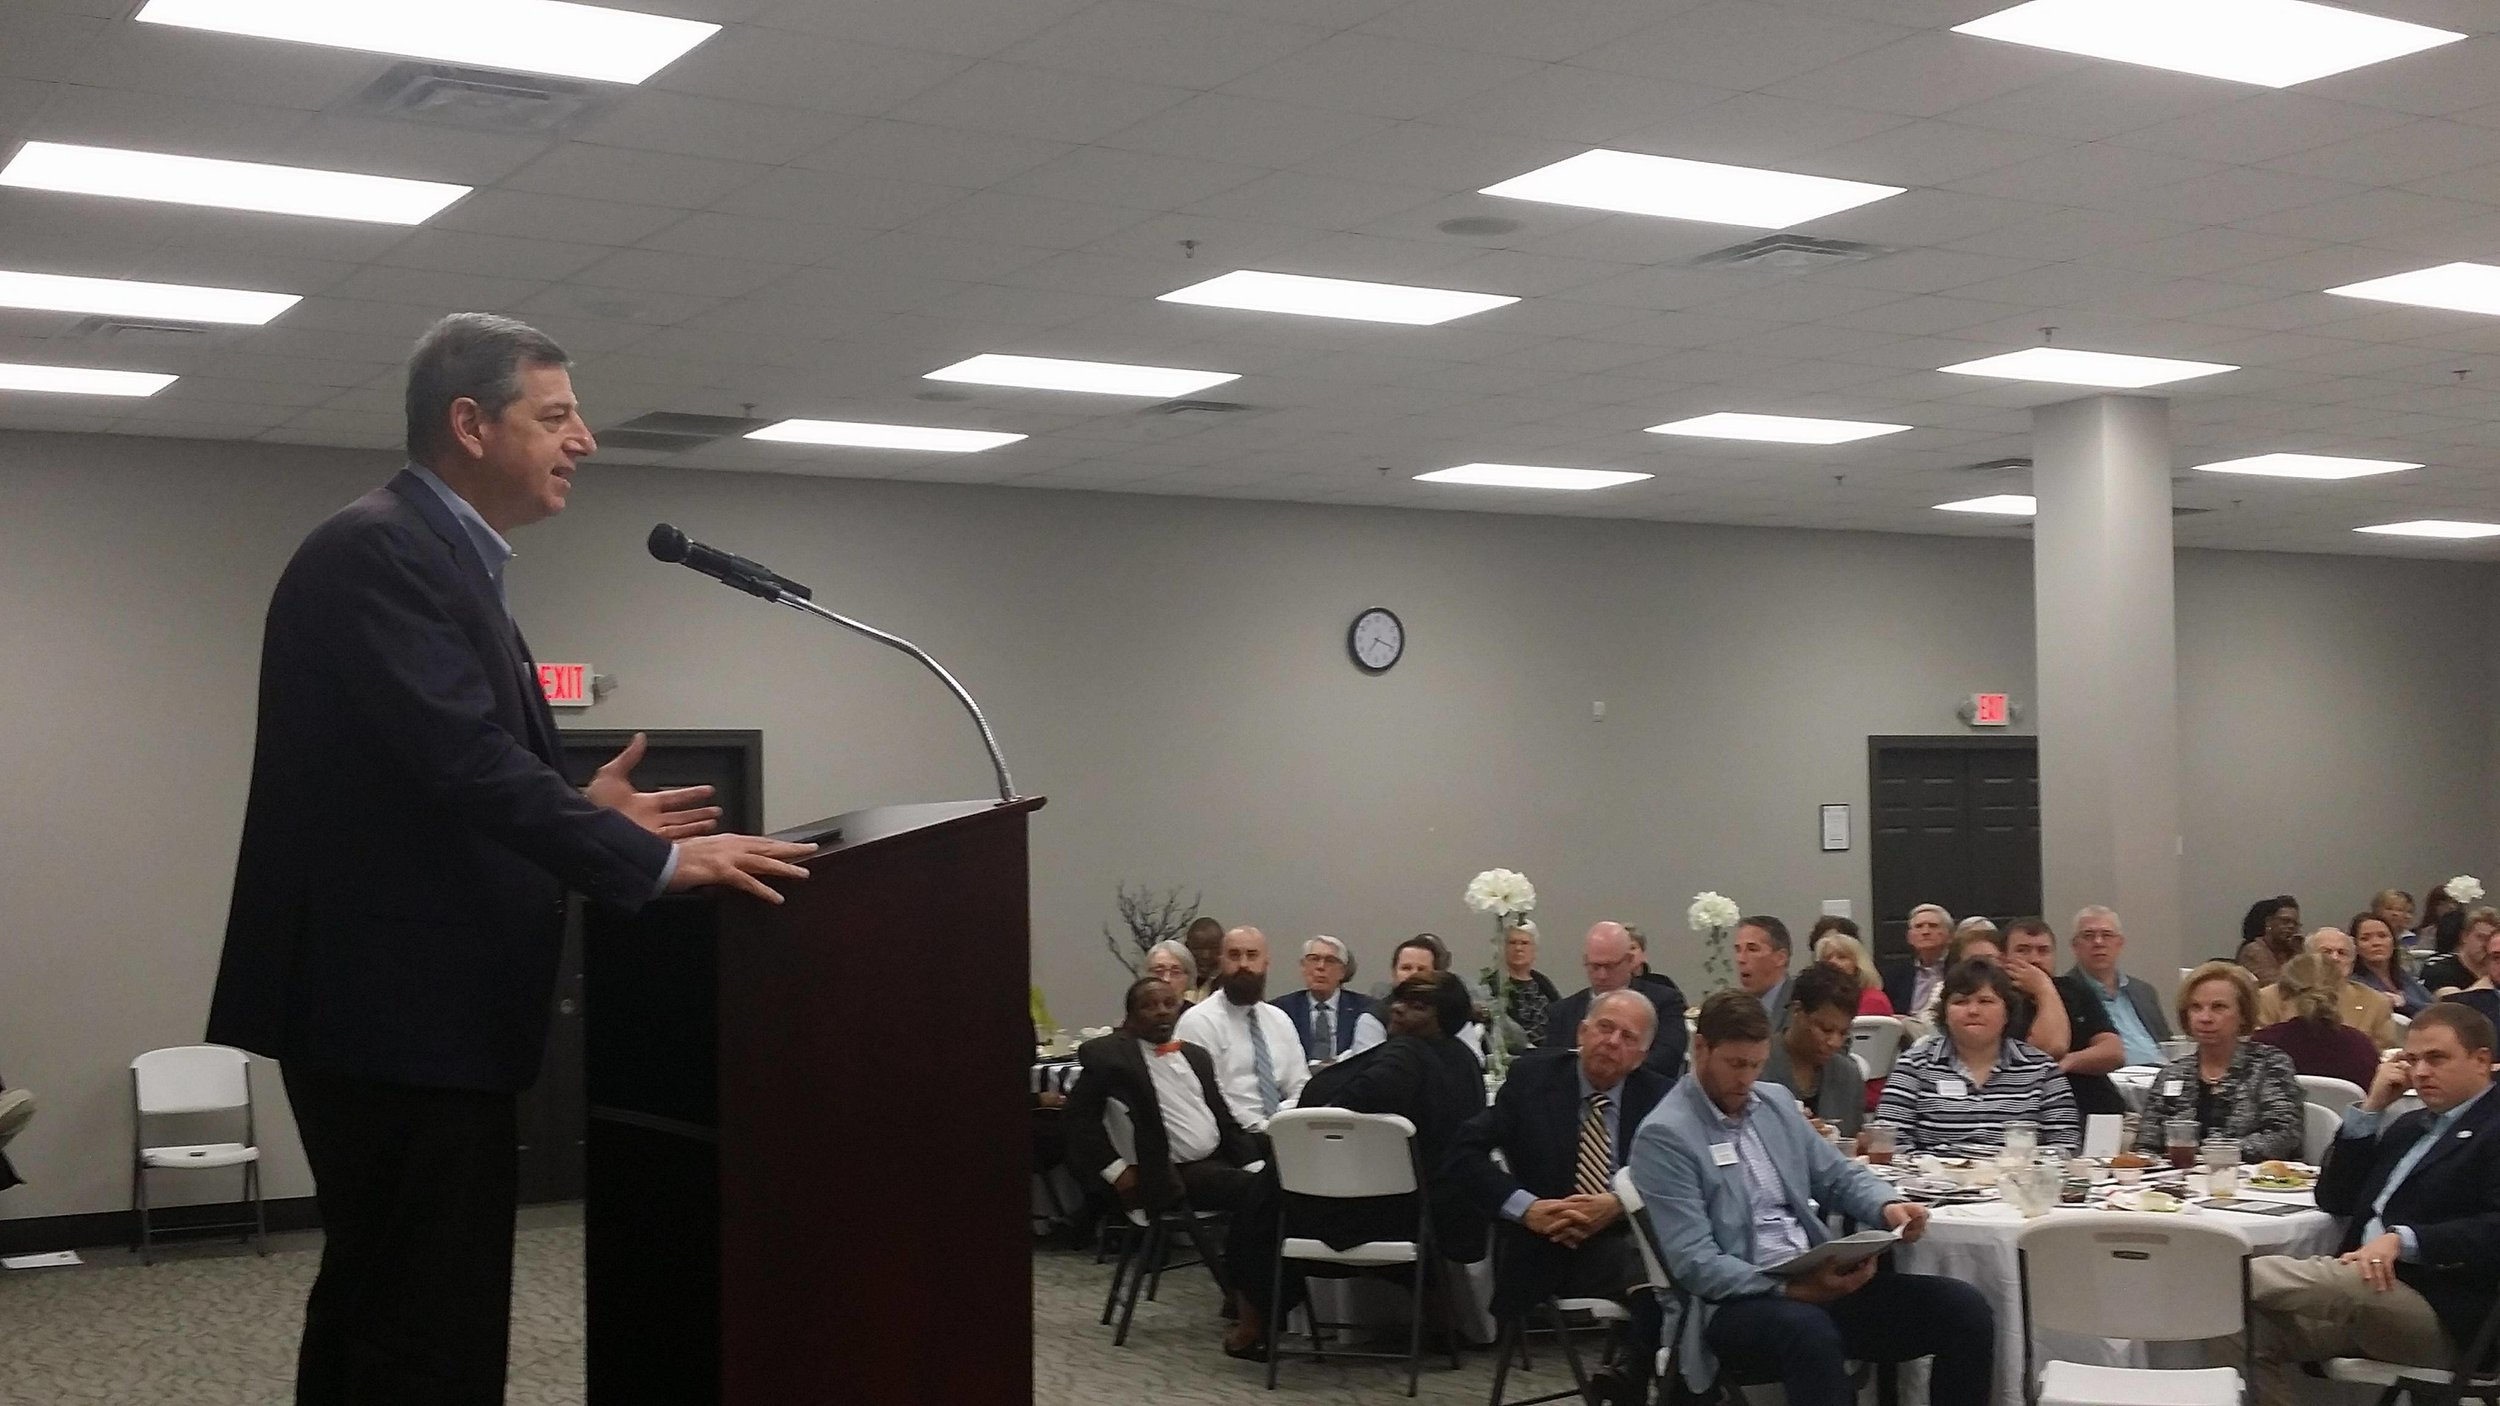 Bill Simon, former President and Chief Executive Officer of Walmart U.S., speaks at the La Grange event. Photo by Jon Dawson / Neuse News